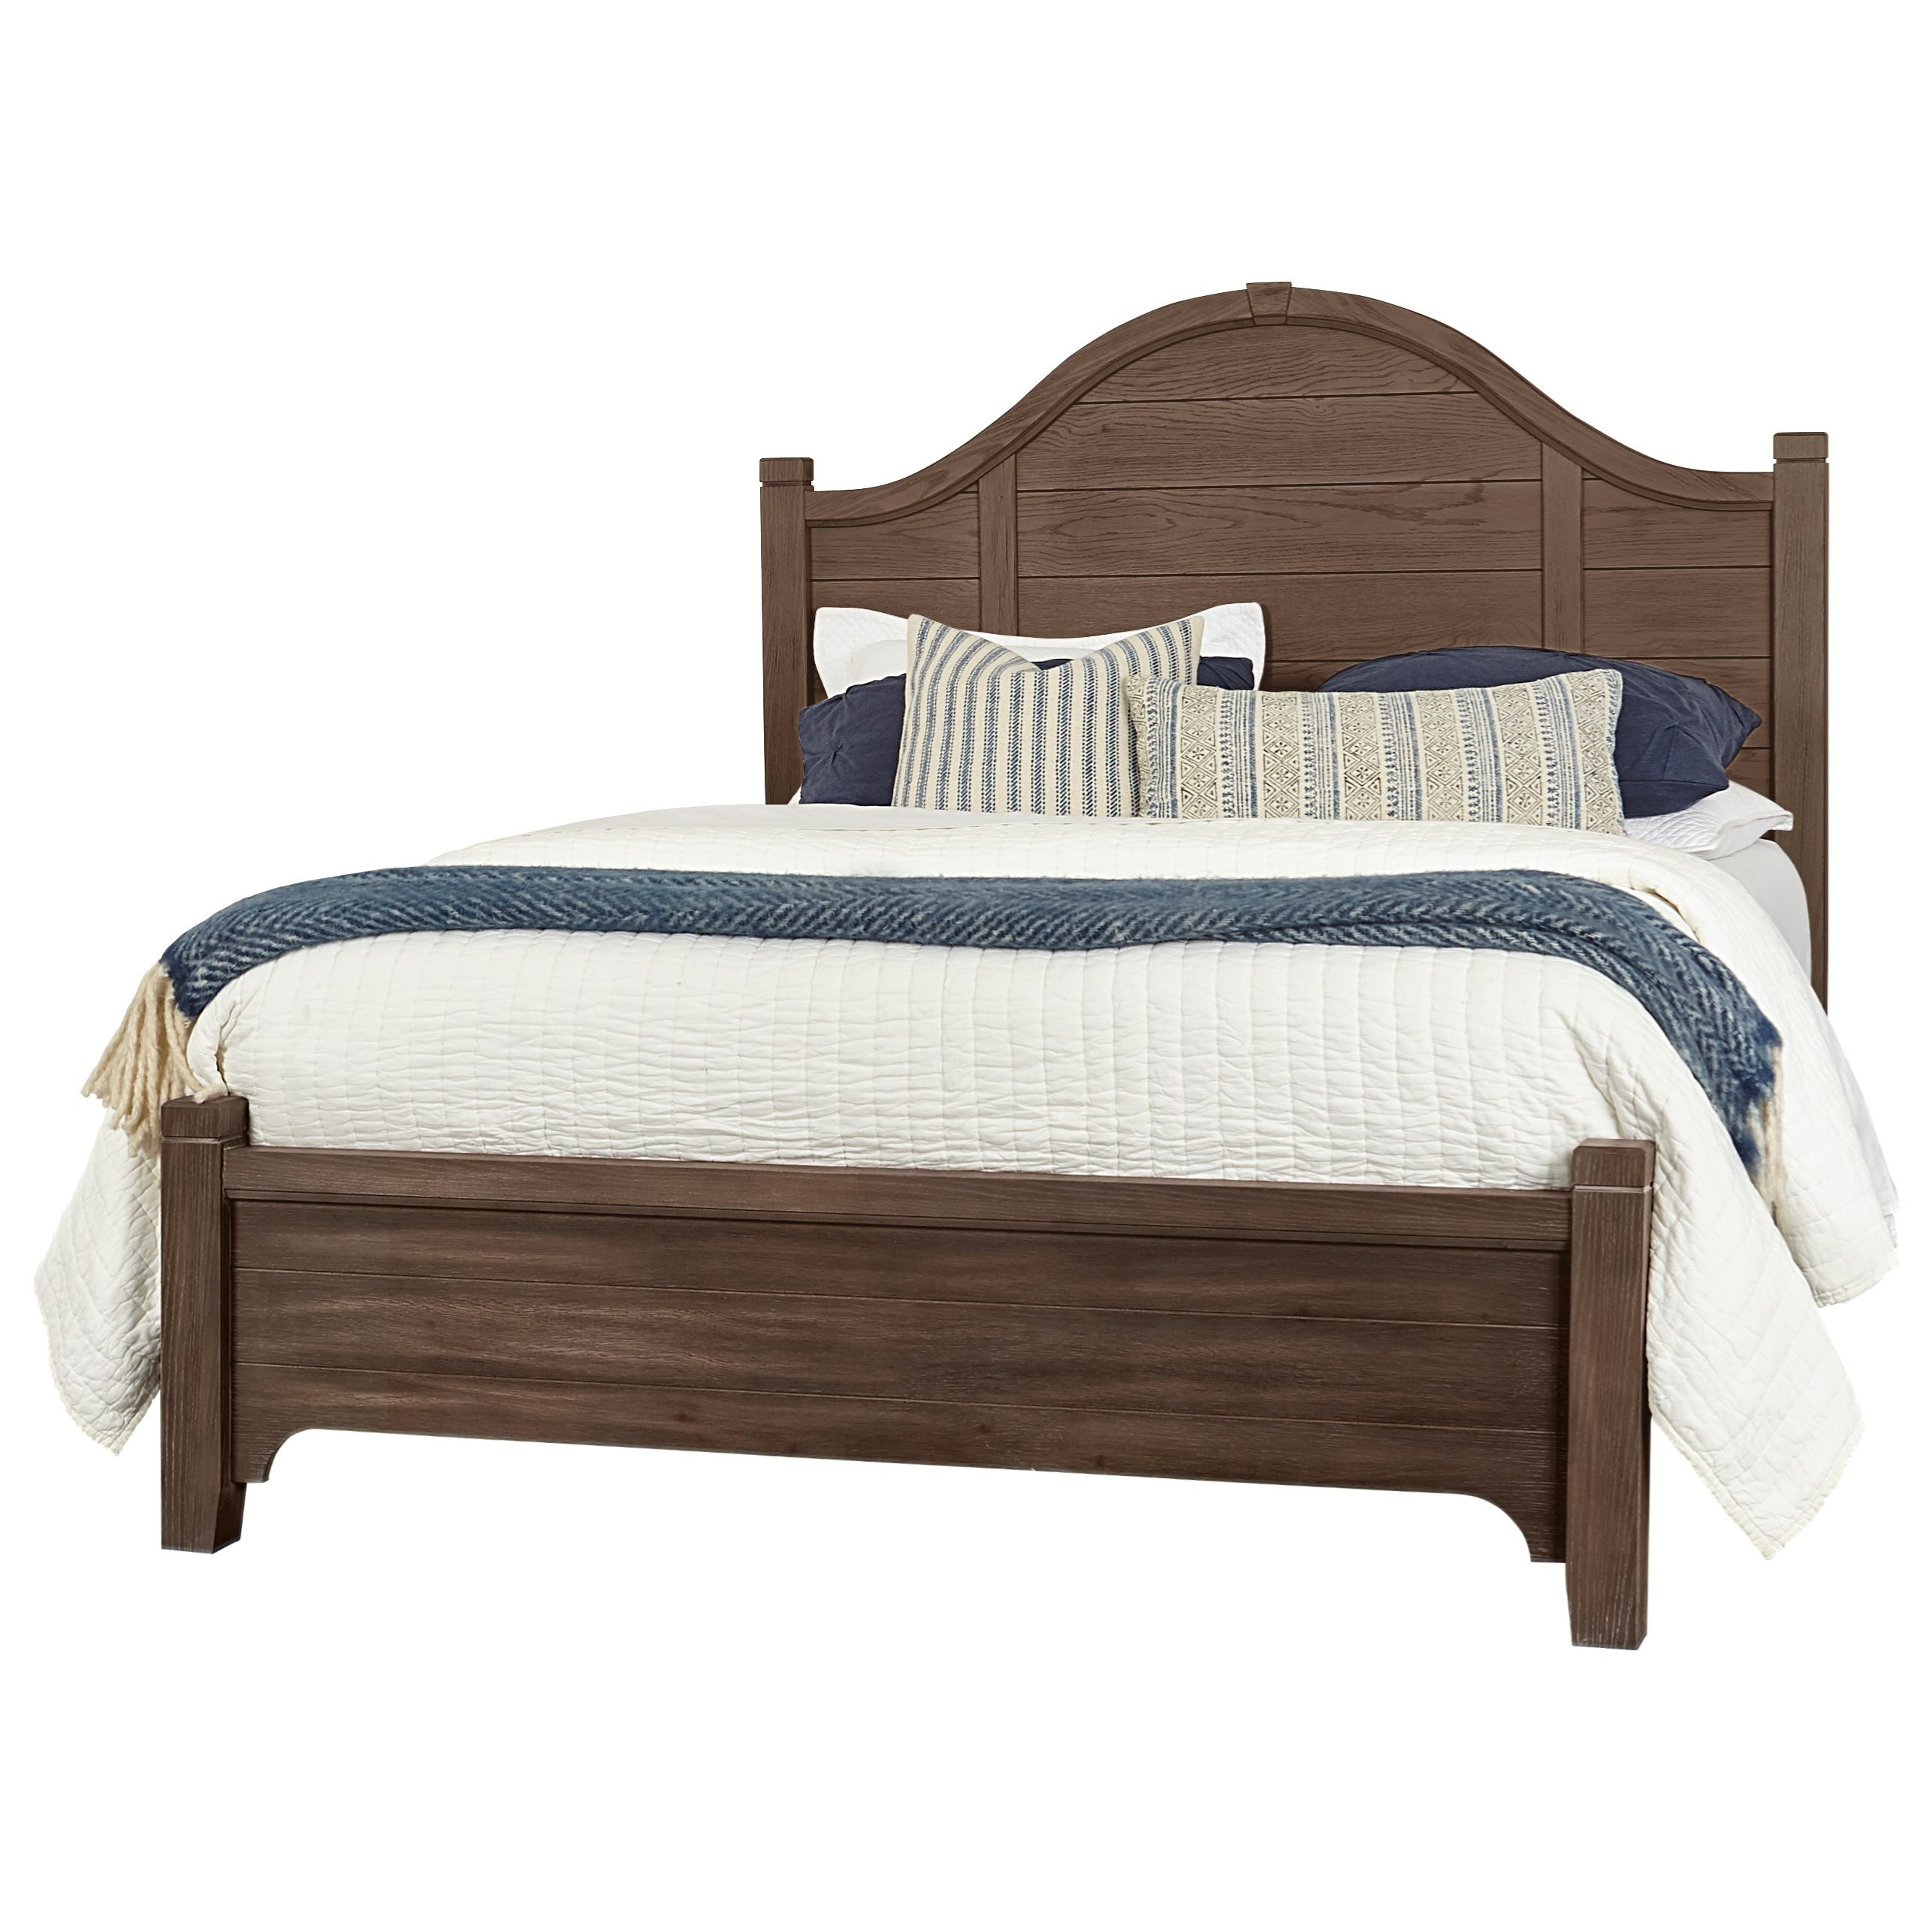 Bungalow Queen Arch Bed Low Profile Footboard by Vaughan-Bassett at Crowley Furniture & Mattress